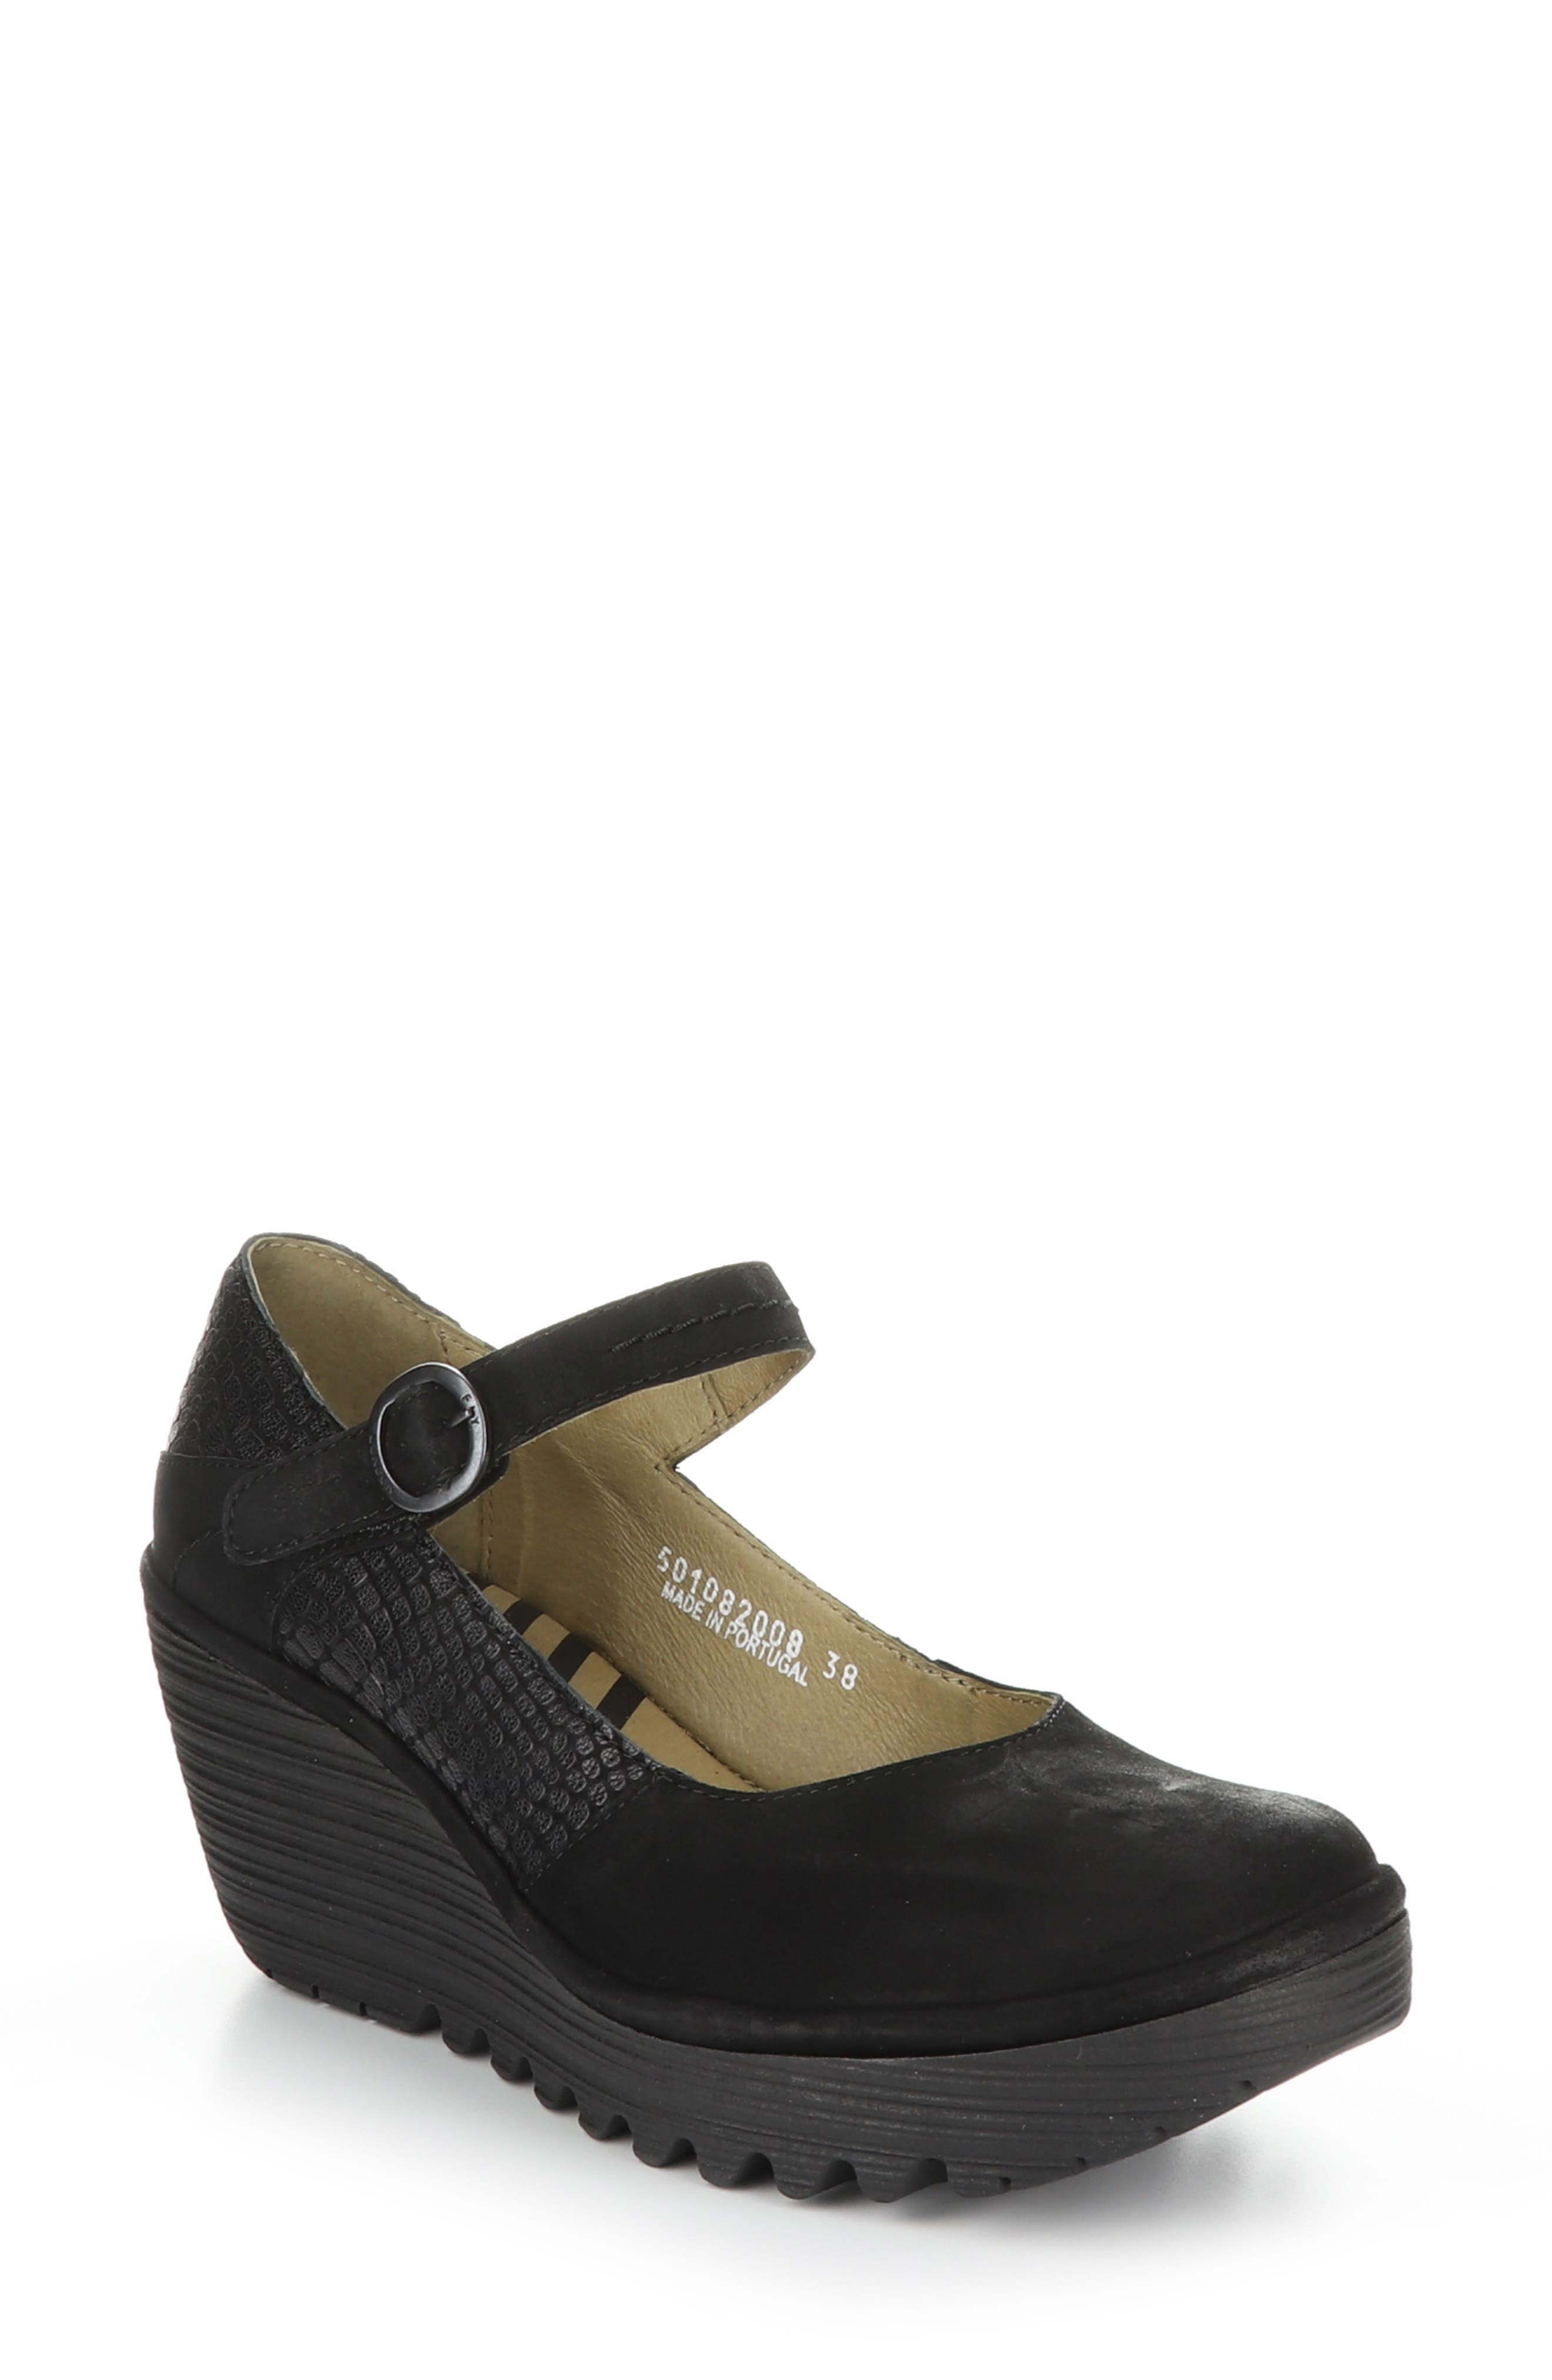 Fly London\\\'s signature wedge platform elevates this mixed-media mary jane pump that\\\'s comfortable enough for everyday wear. Style Name: Fly London Yuko Wedge Mary Jane Pump (Women). Style Number: 5837866. Available in stores.